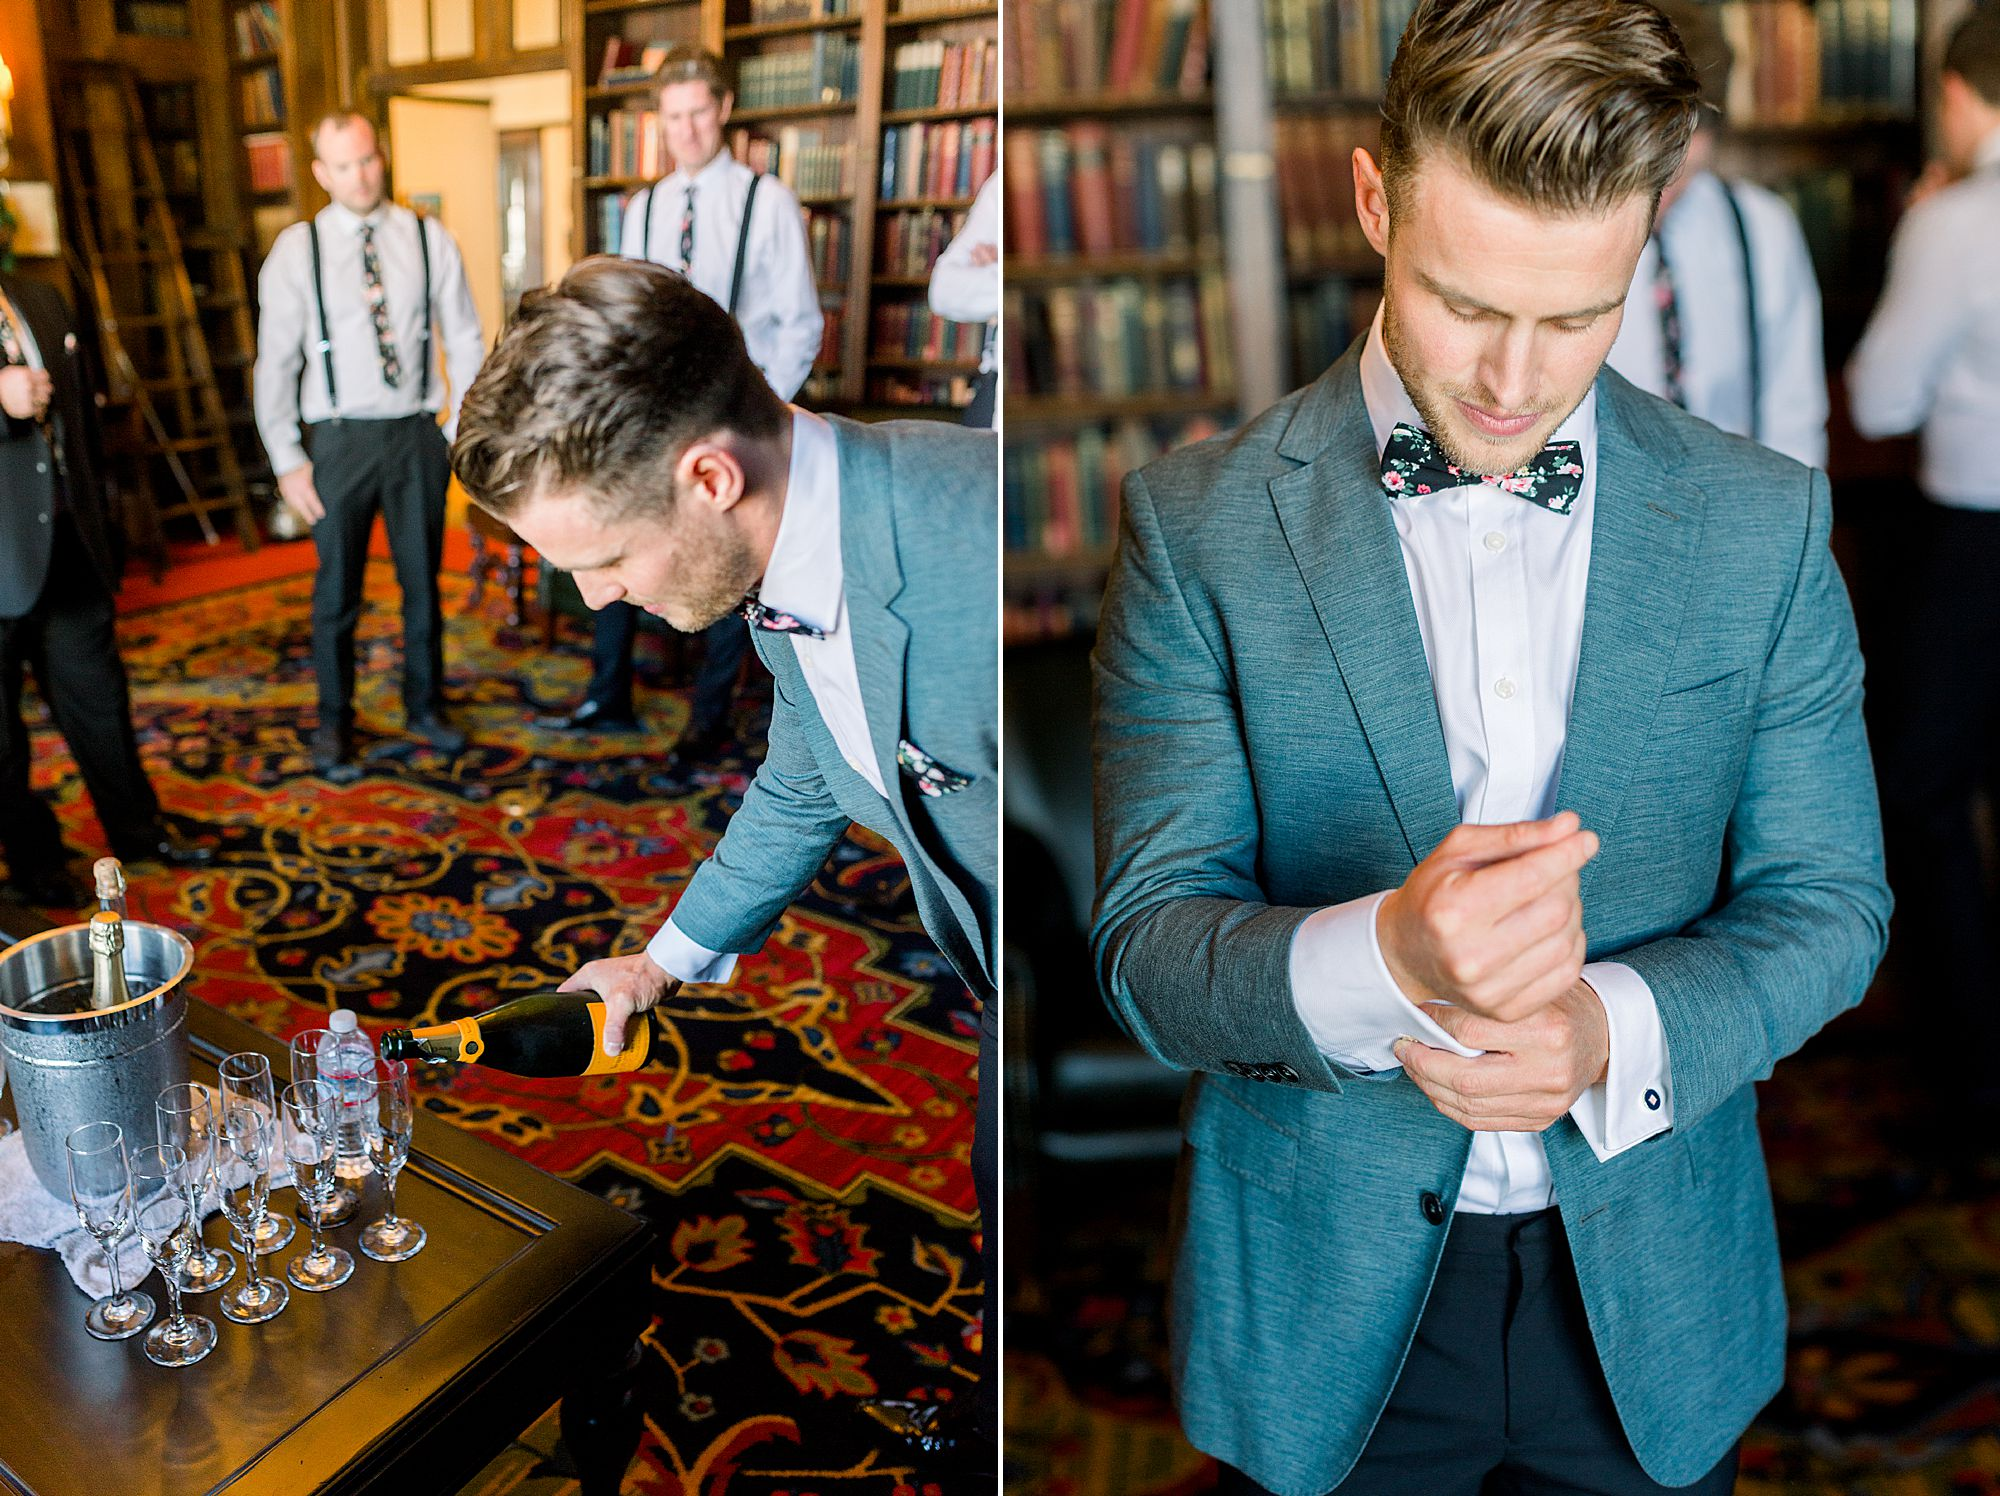 University Club Wedding in San Francisco - Cortney and Jon - San Francisco Wedding - Ashley Baumgartner - SF Wedding Photographer_0048.jpg